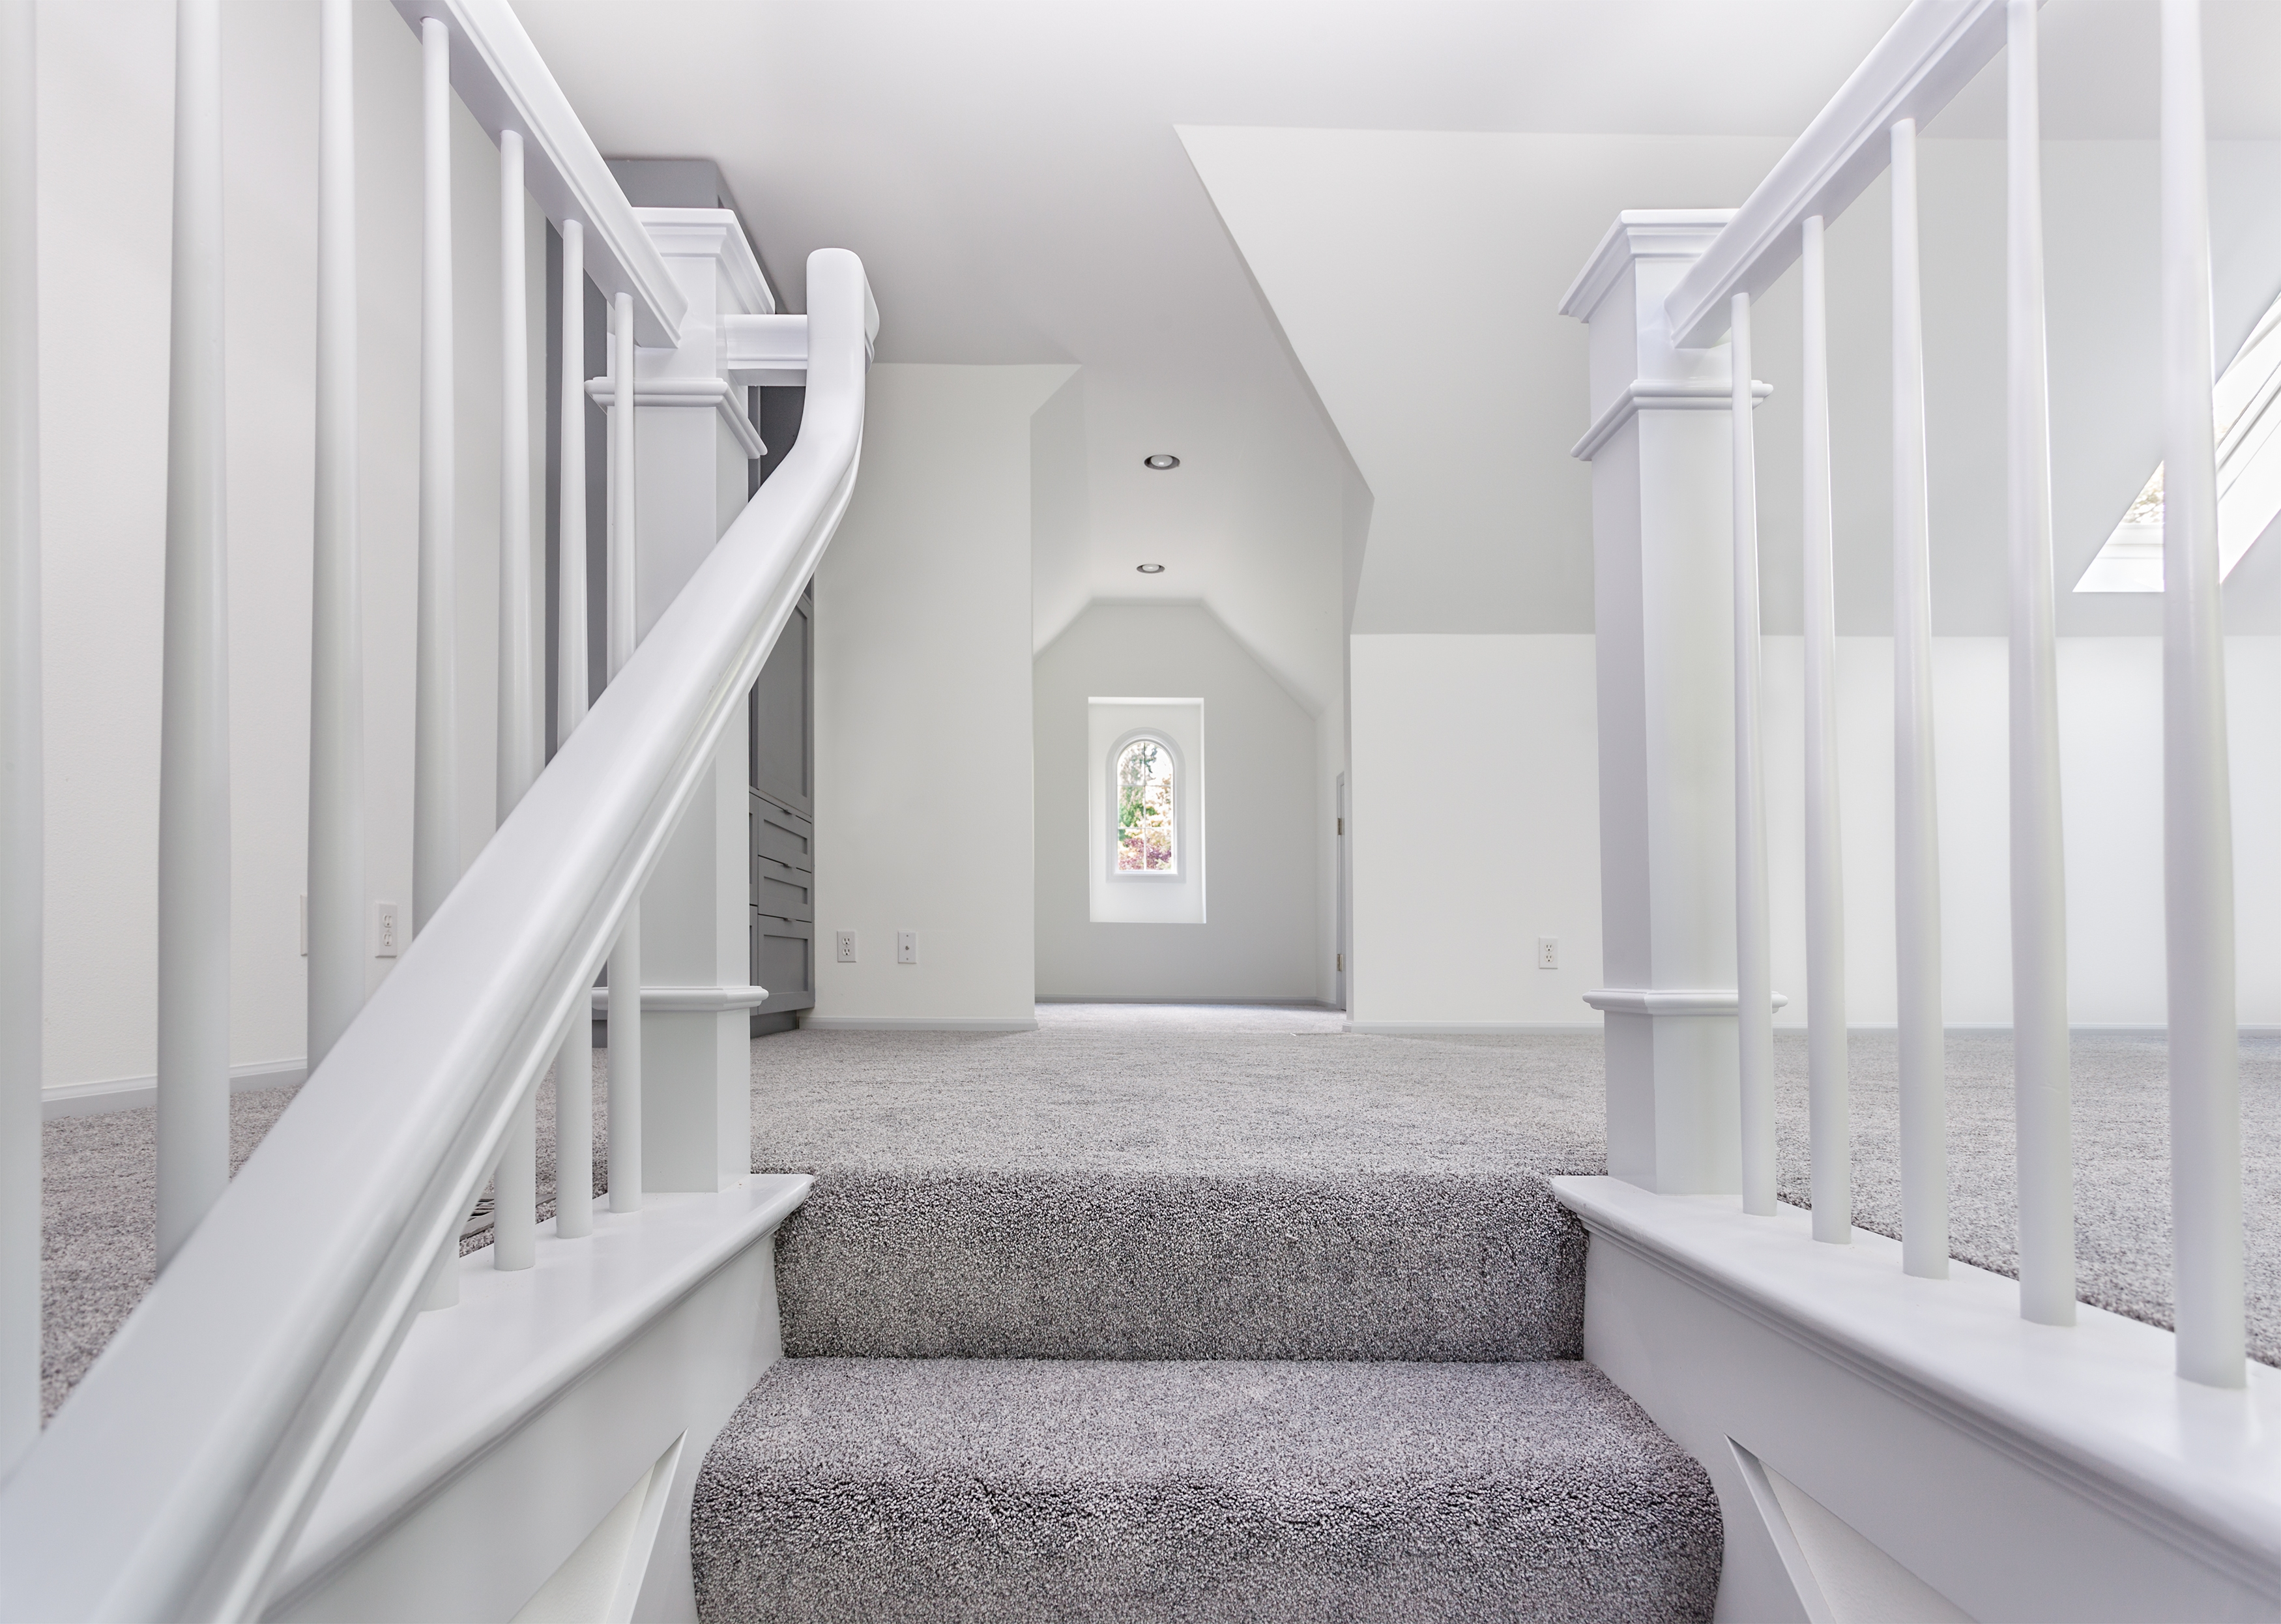 How To Lay Carpet On Stairs And The Landing Builddirectlearning | Fitting Carpet To Open Tread Stairs | Landing | Floating Staircase | Stairway | Hardwood | Prefinished Stair